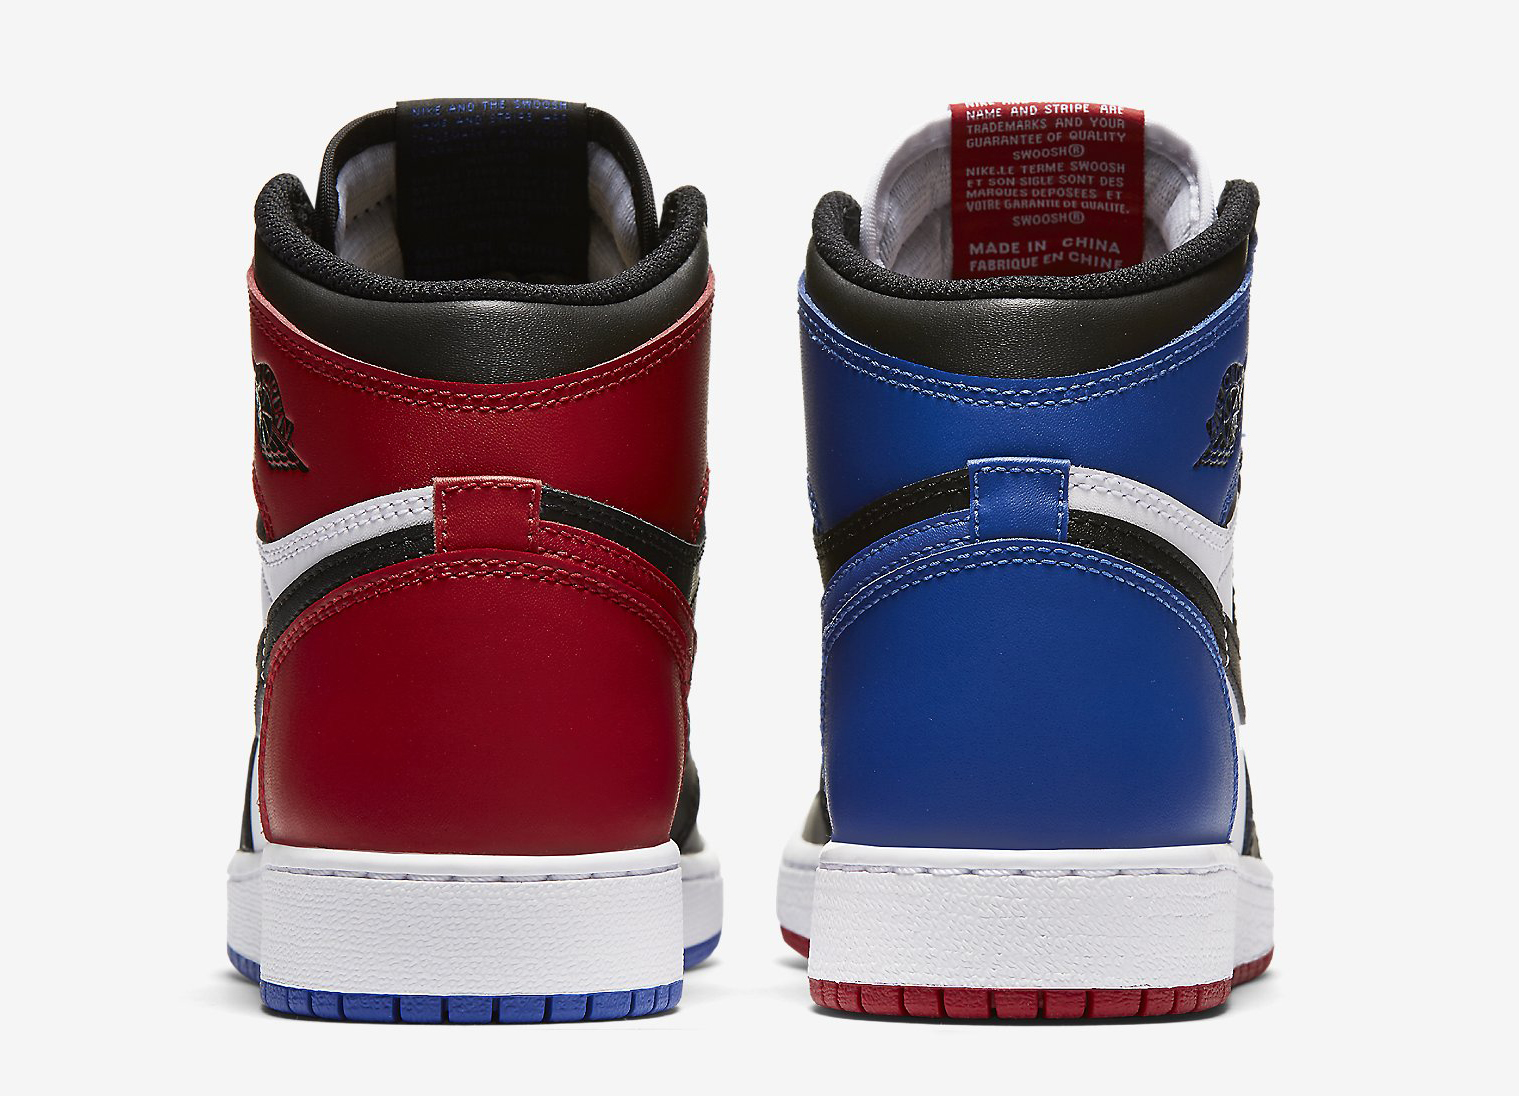 wholesale dealer 83068 604e2 Top Three Air Jordan 1 GS 575441-026 | Sole Collector